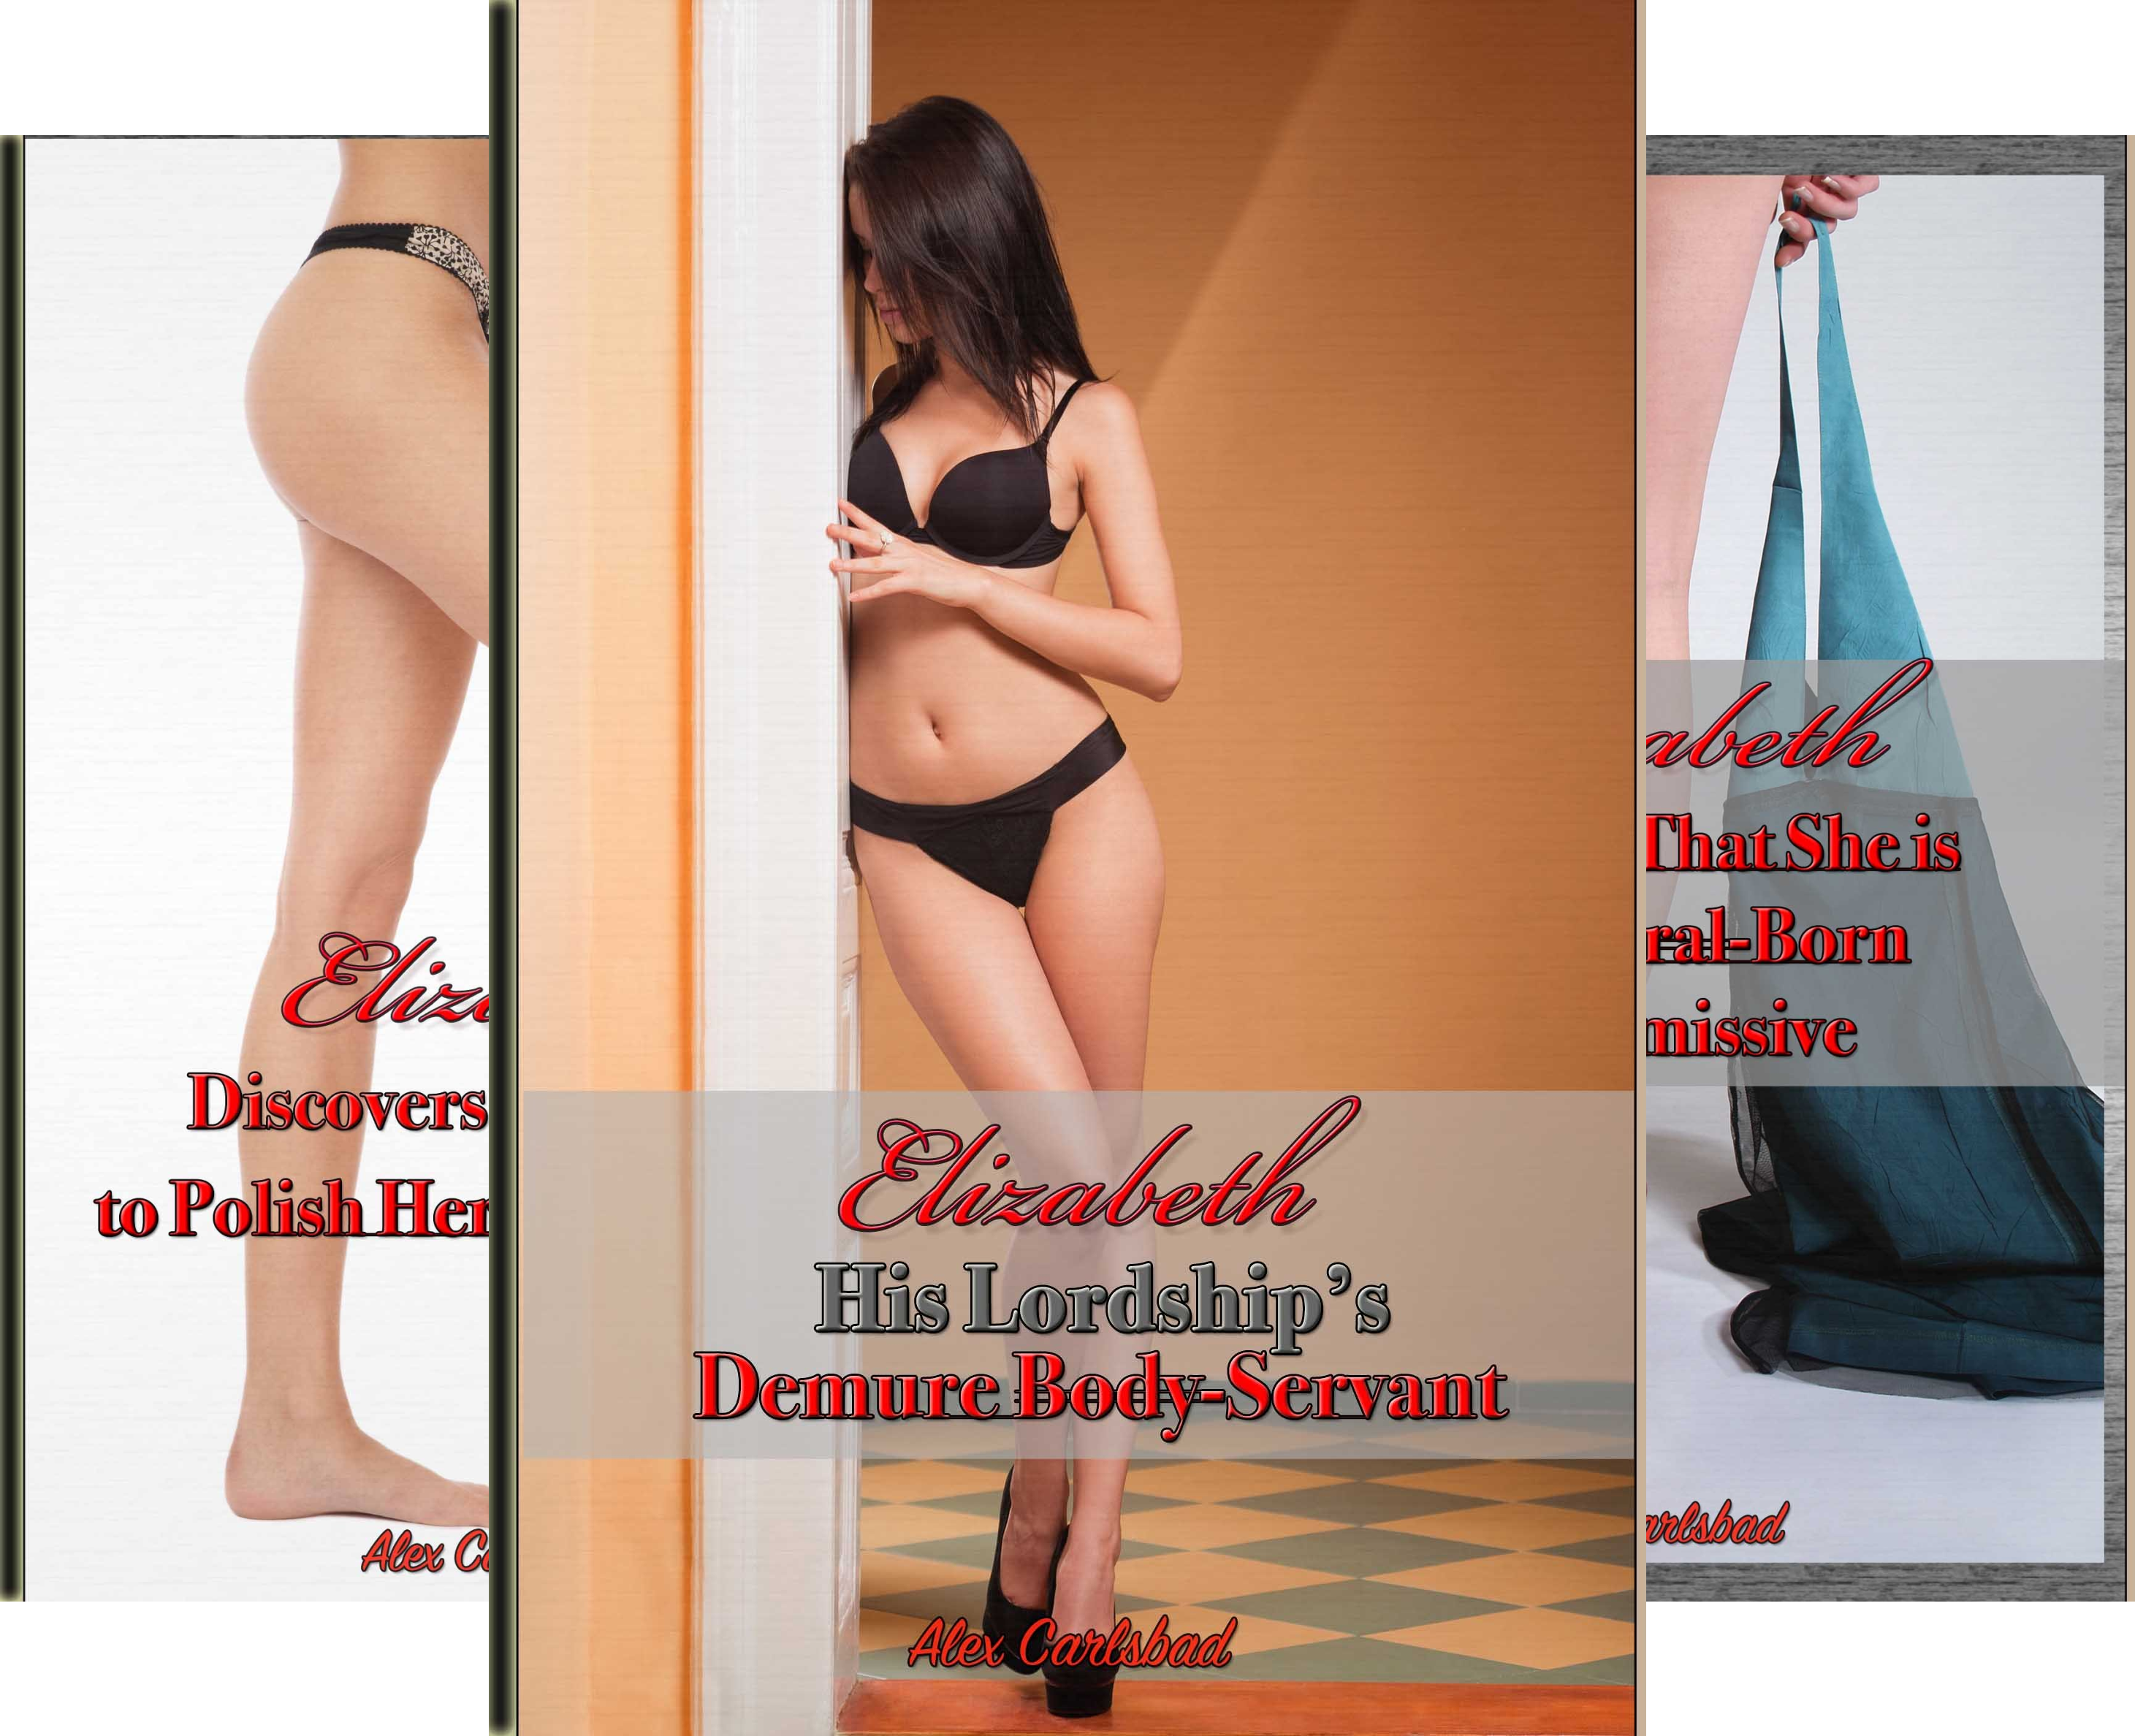 Elizabeth, His Lordship's Demure Body-Servant (5 Book Series)